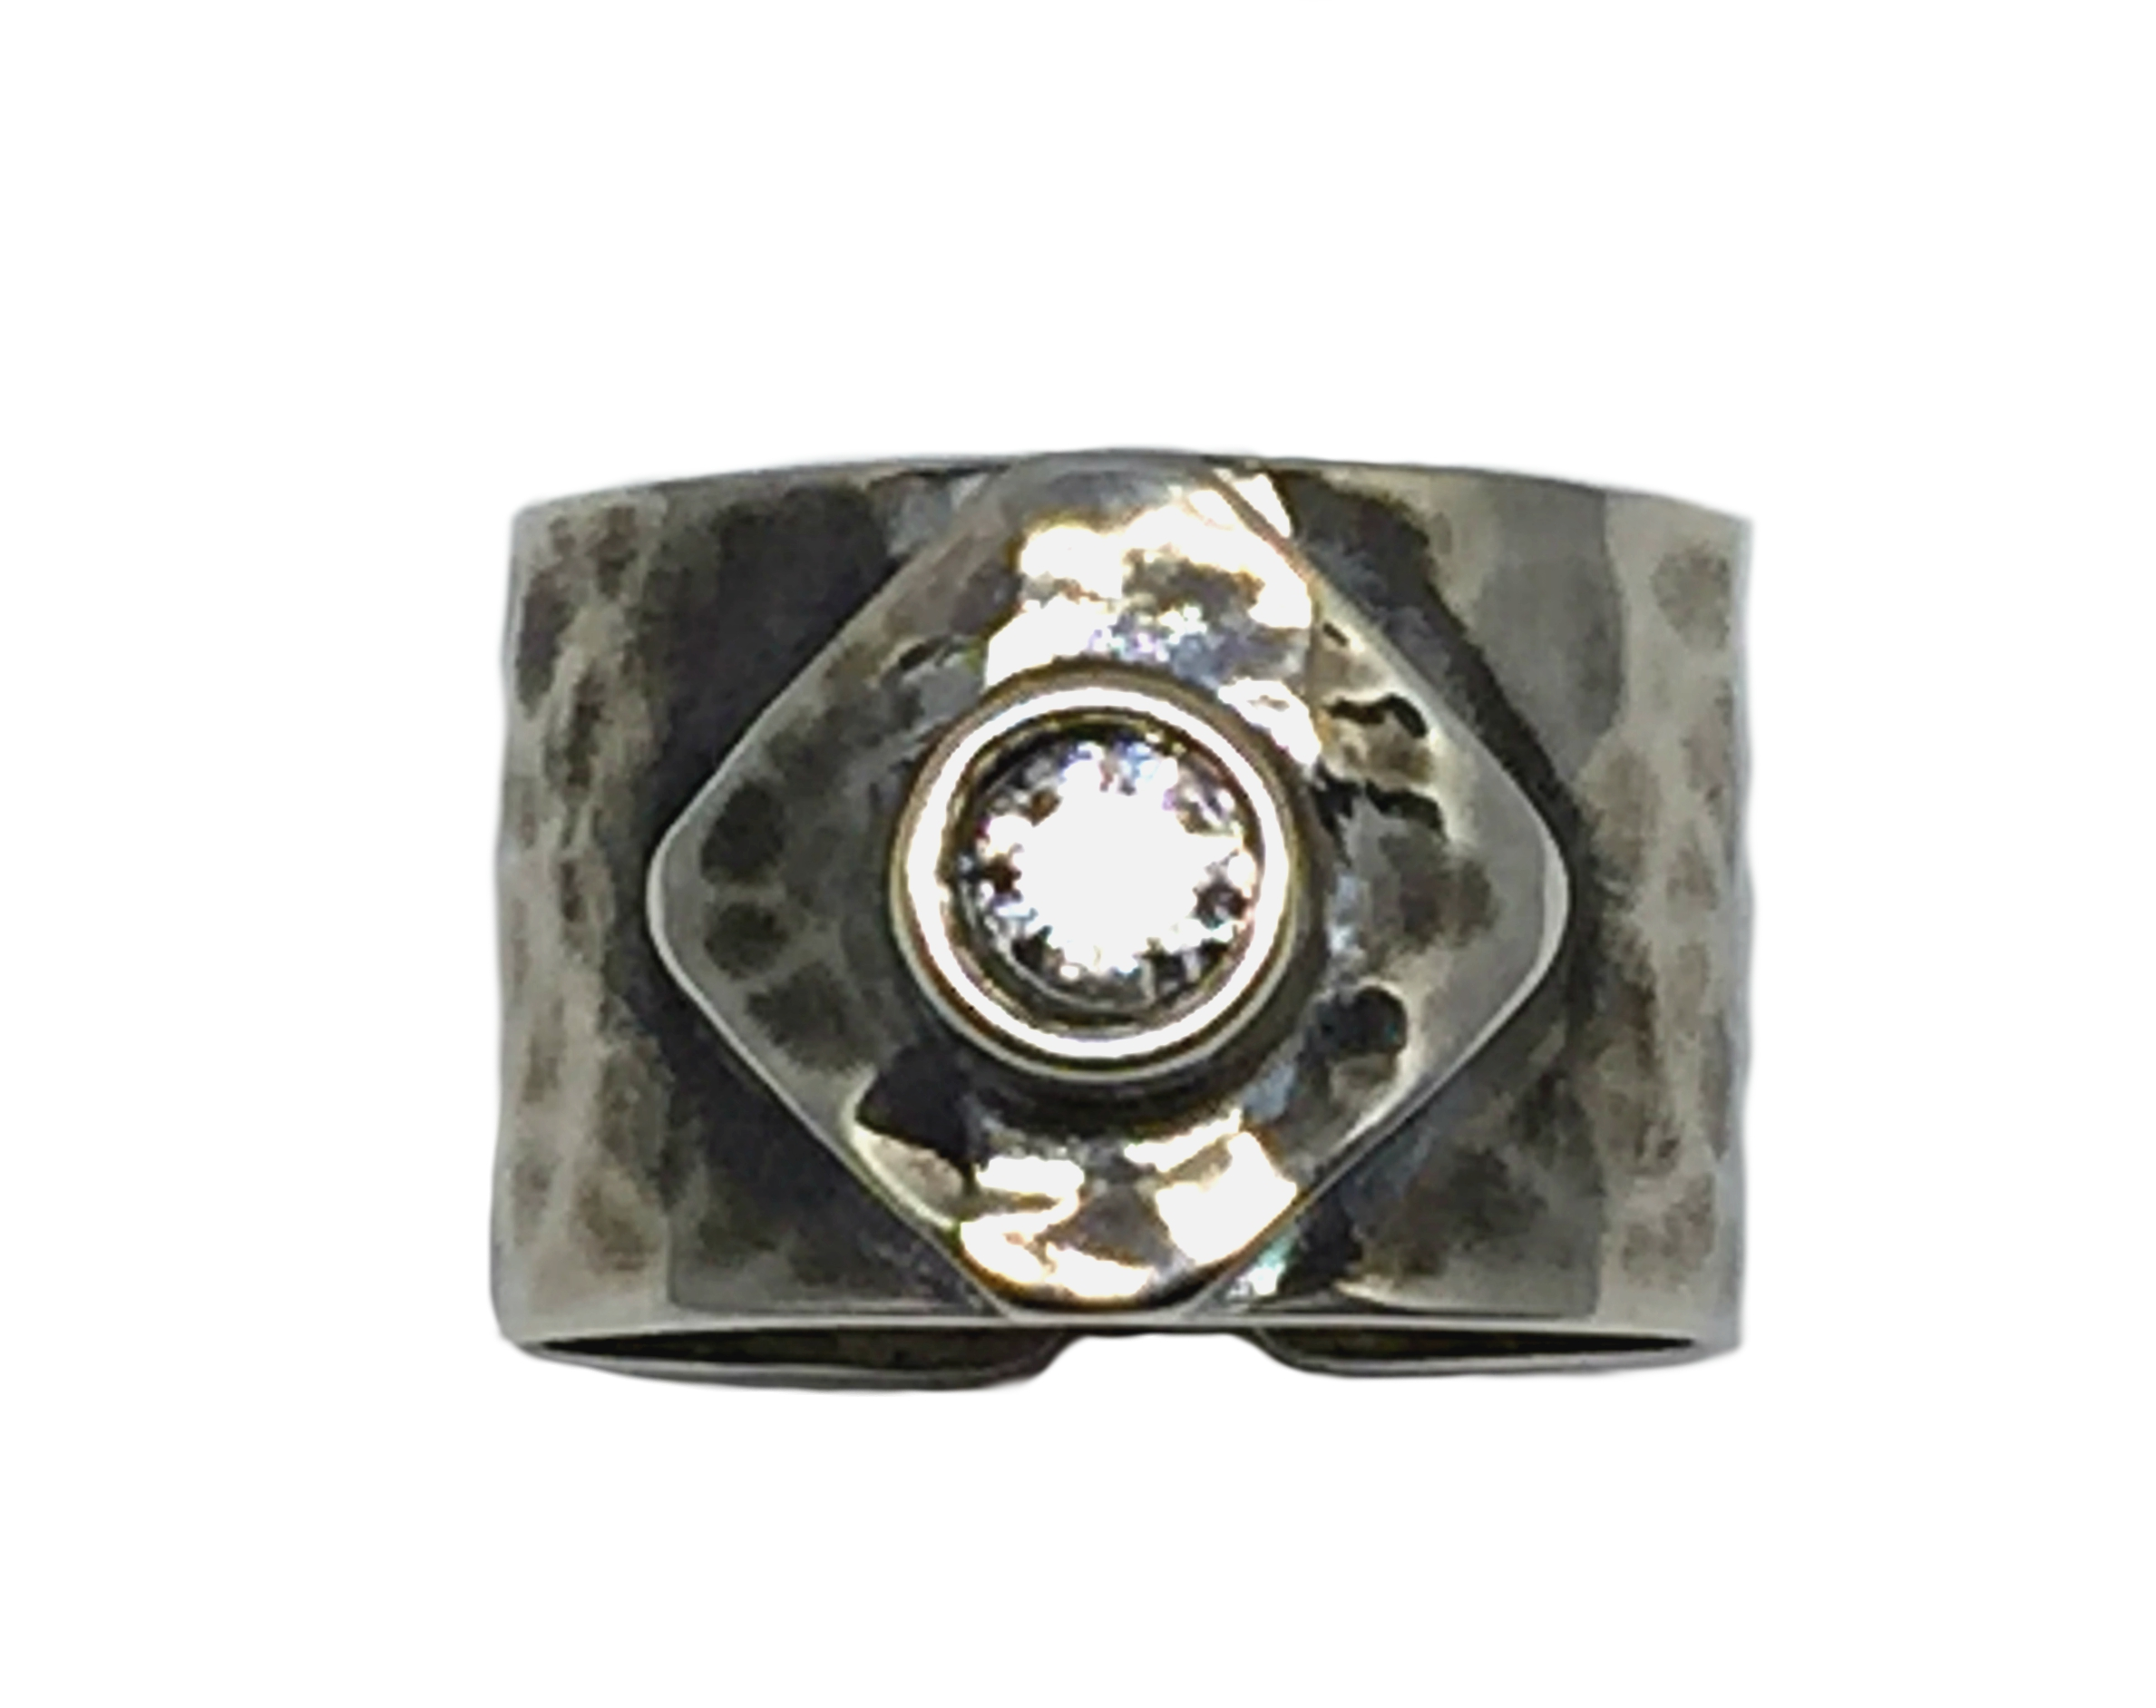 Sterling silver and CZ Karyn Chopik ring | Effusion Art Gallery + Cast Glass Studio, Invermere BC